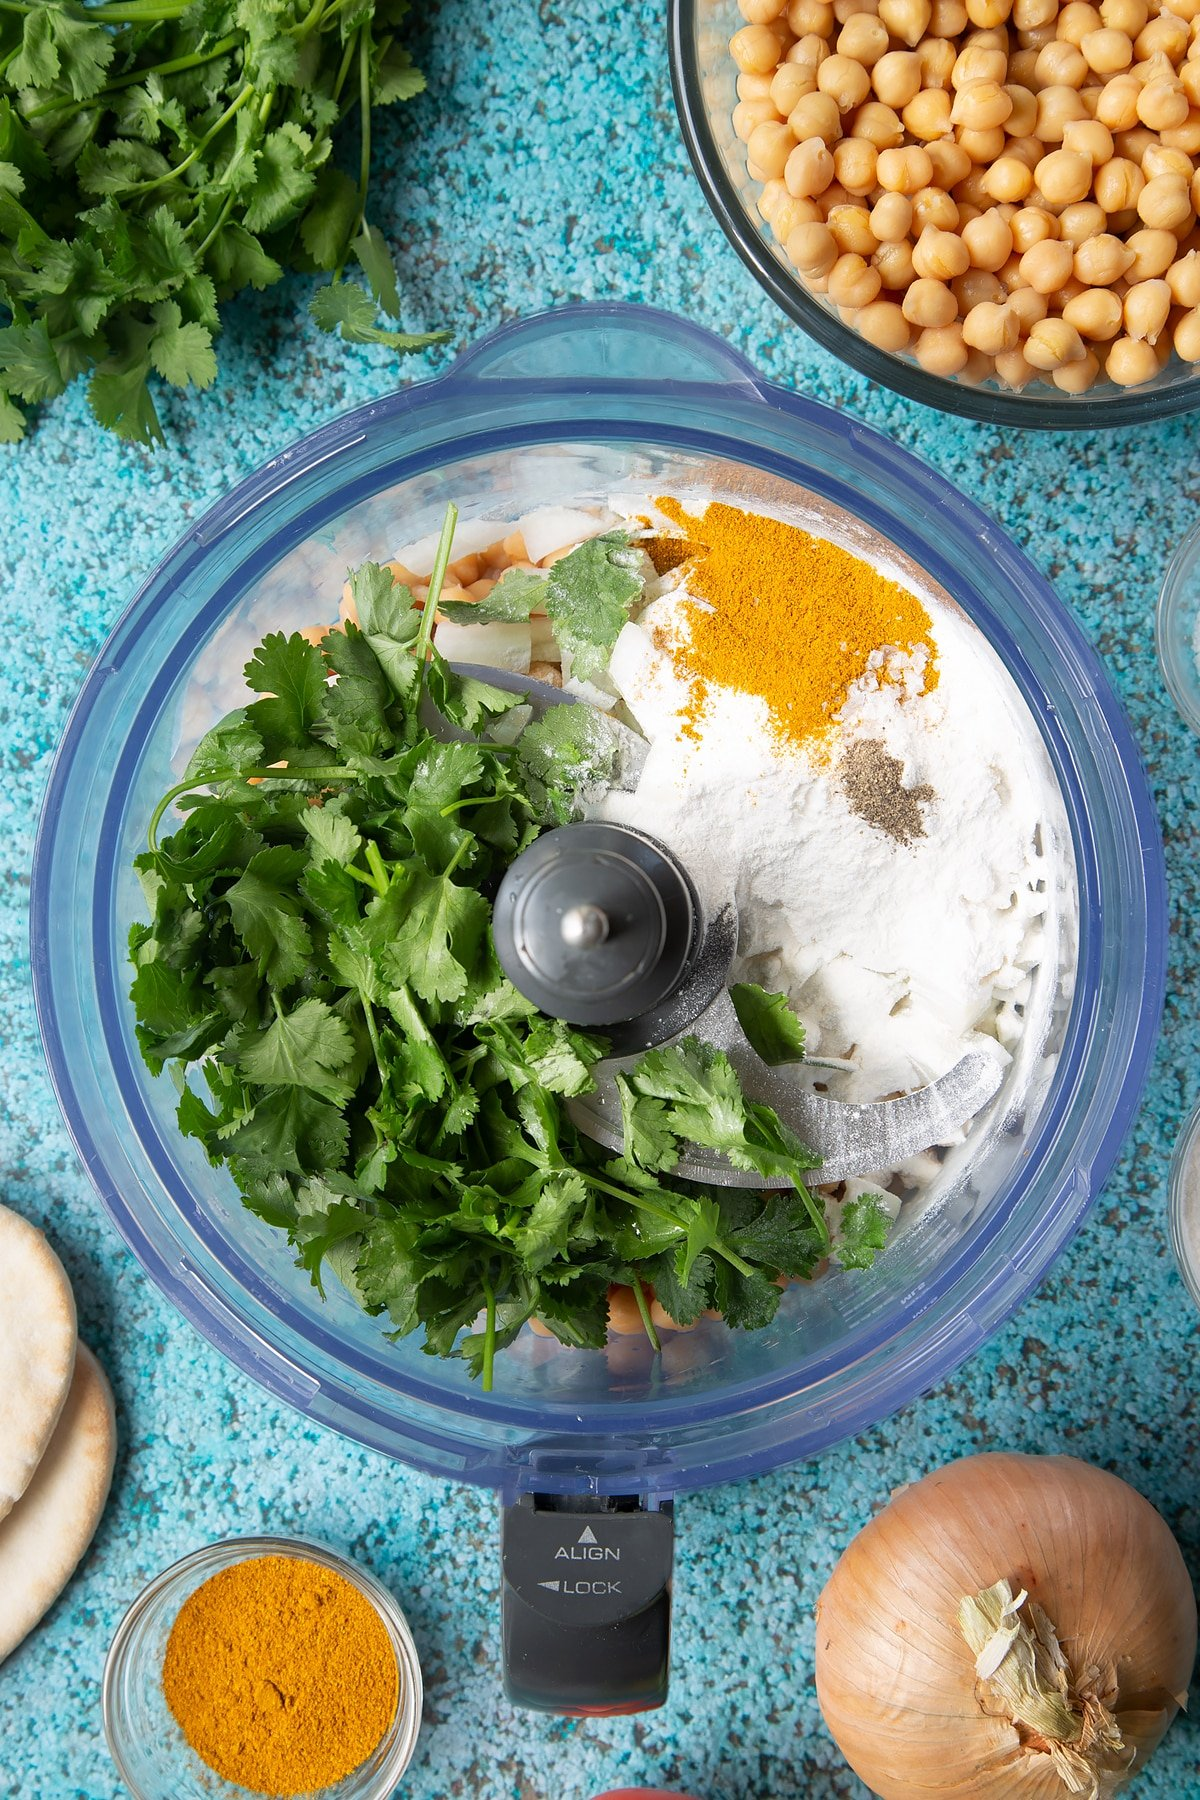 Chickpeas, onion, garlic, fresh coriander, gluten free flour, curry powder, salt and pepper in a food processor bowl. Ingredients to make gluten-free falafel surround the bowl.